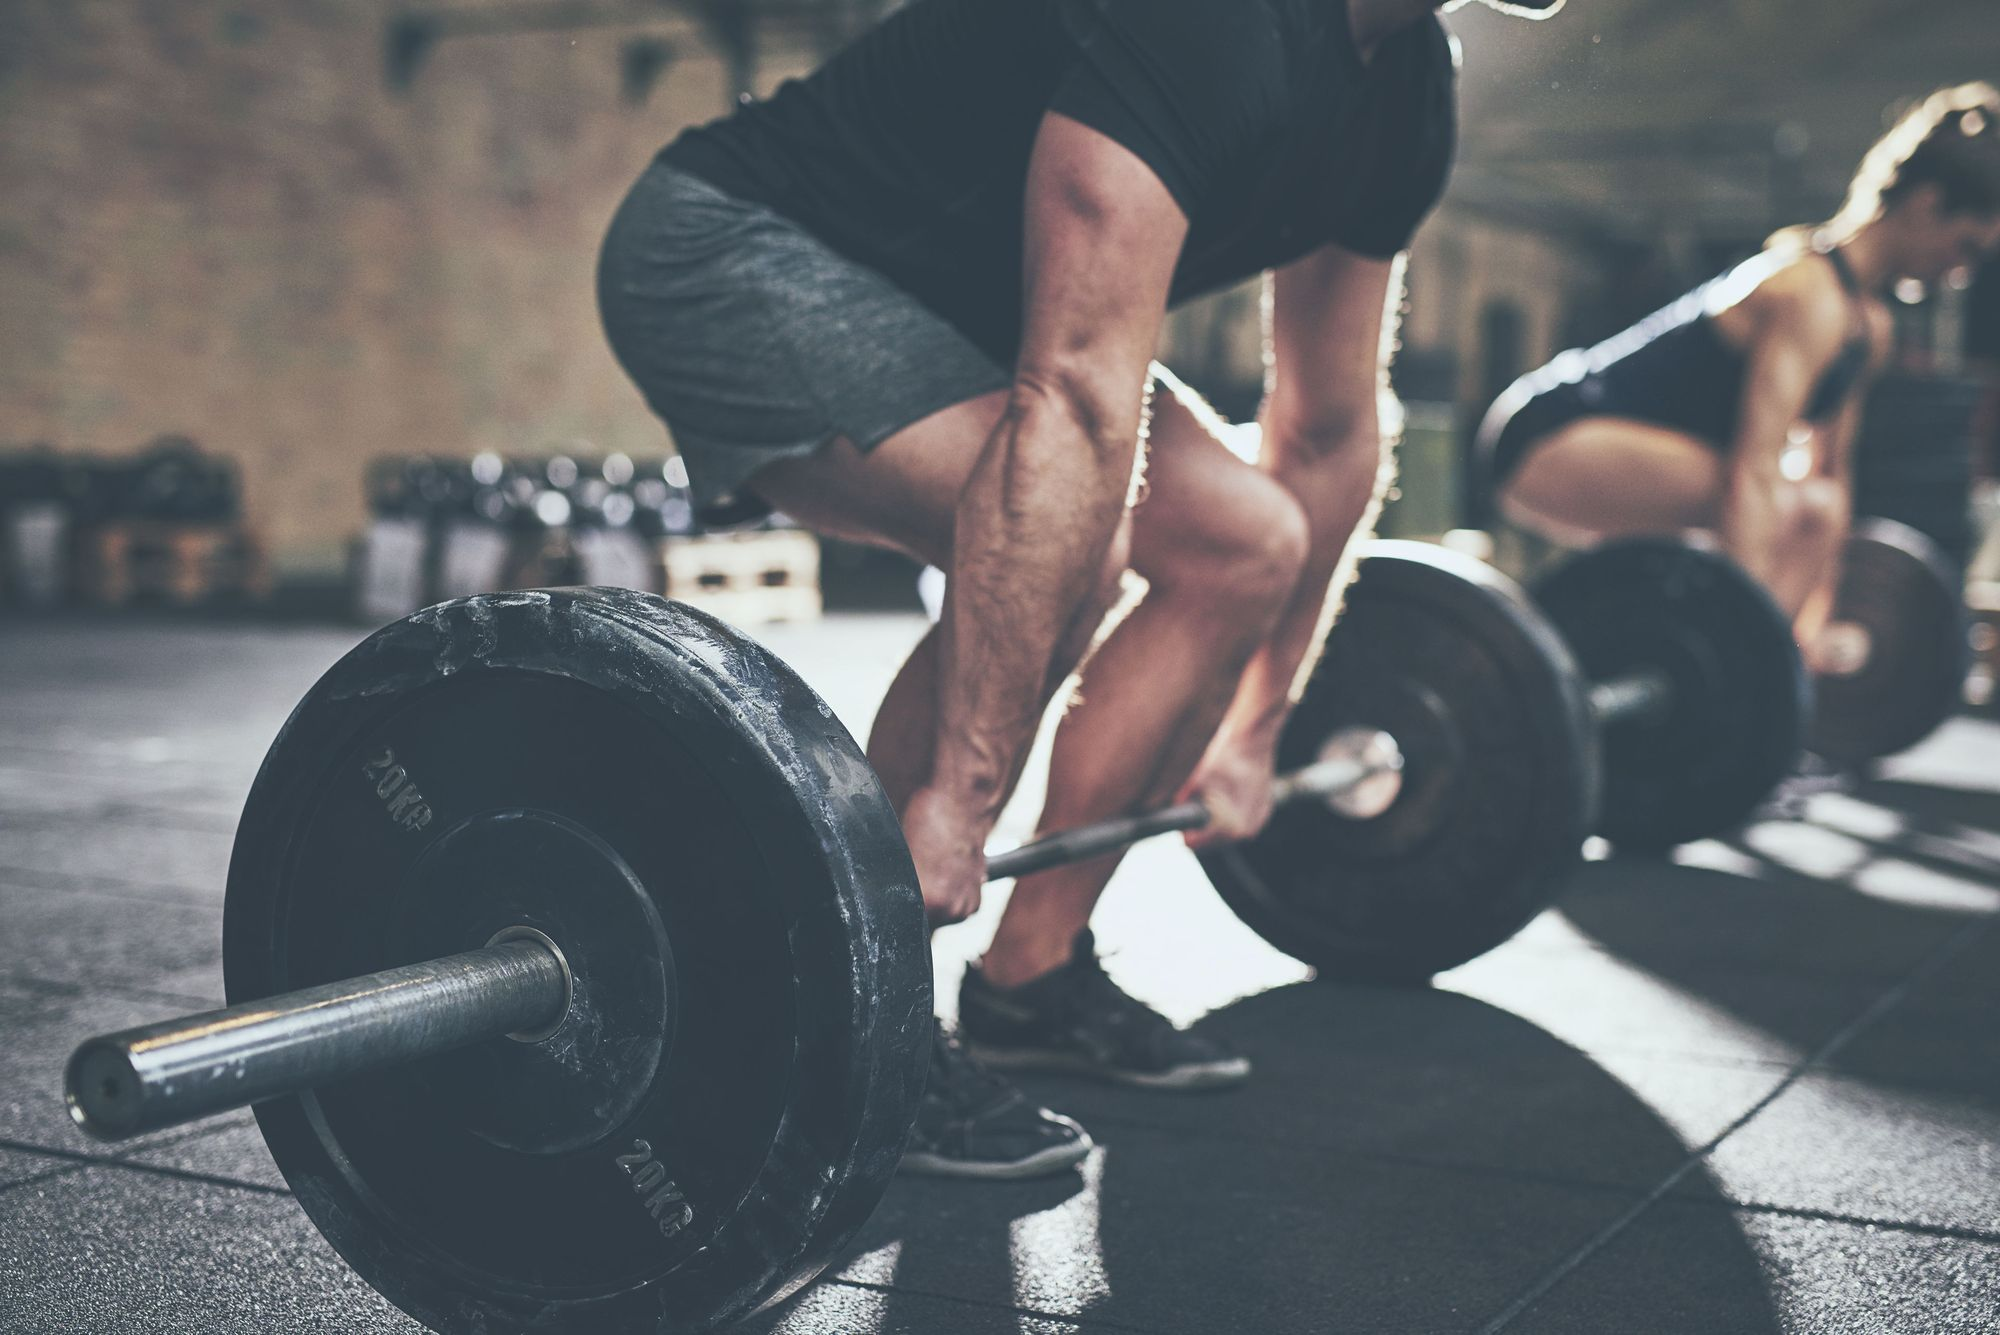 Man lifting weights in the gym